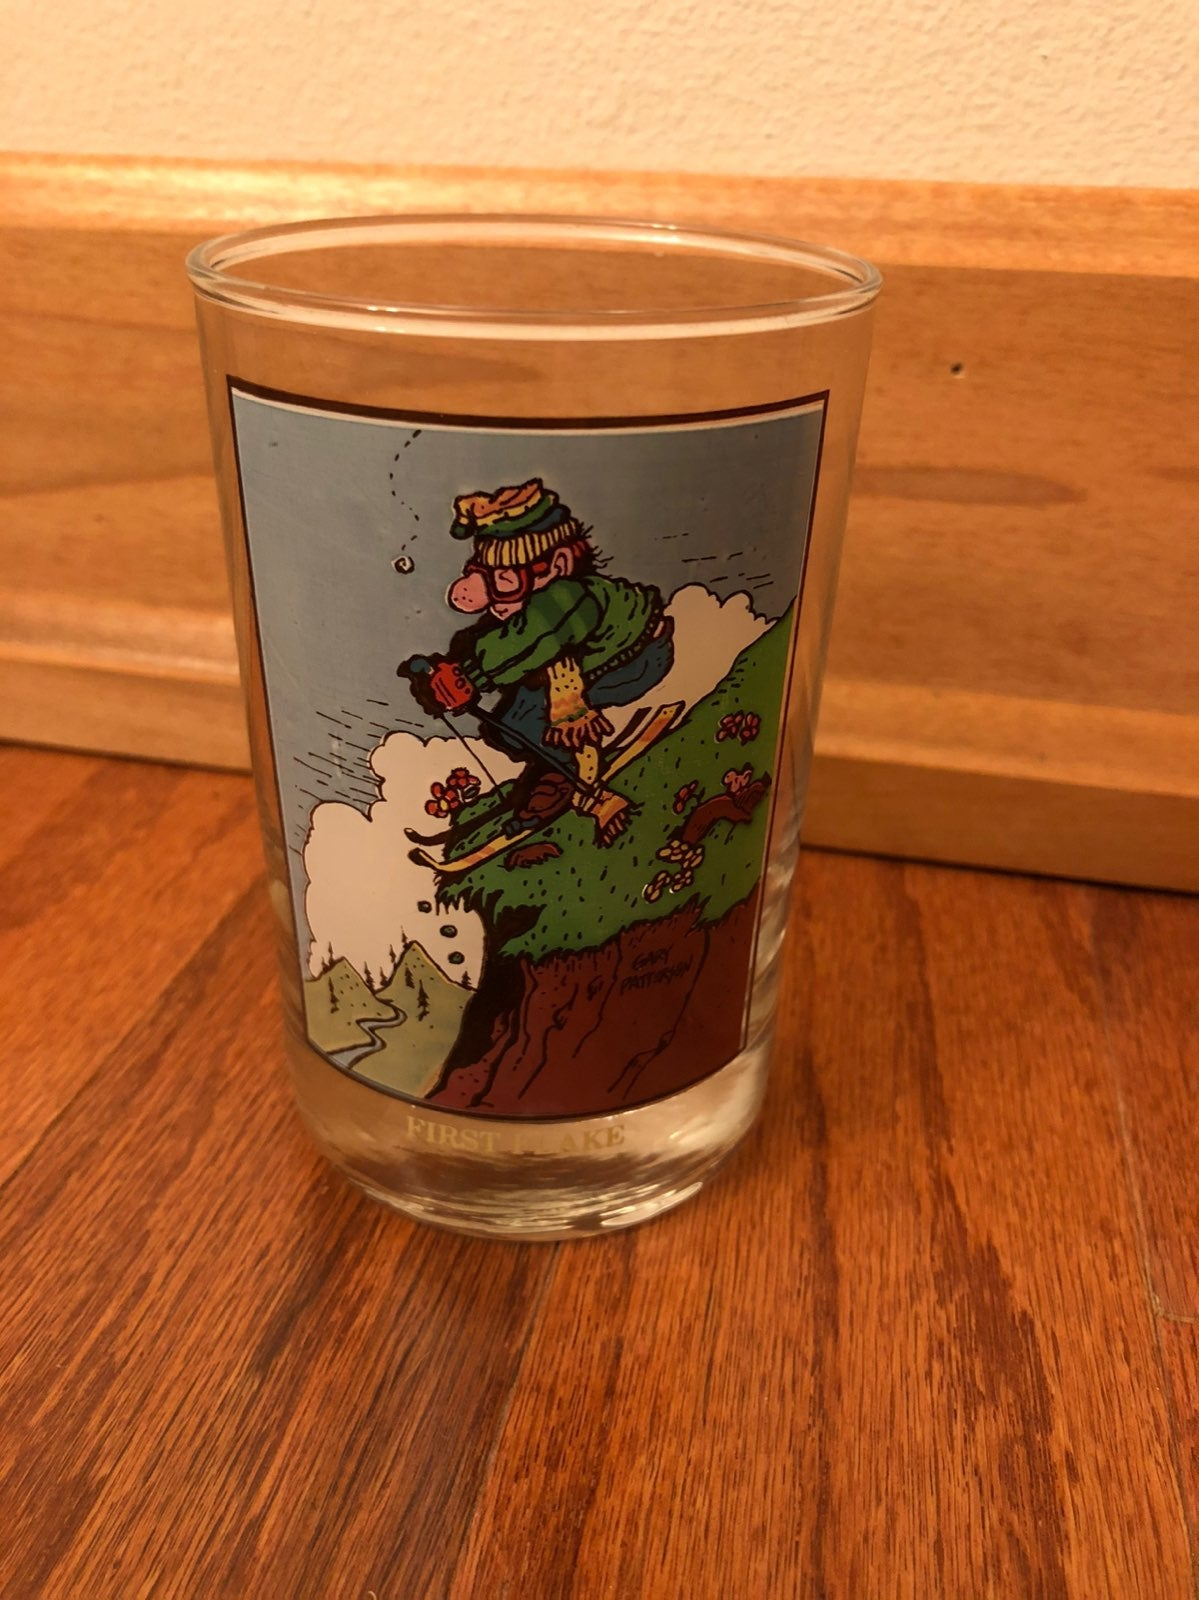 1982 Arby's Collectors glass First Flake